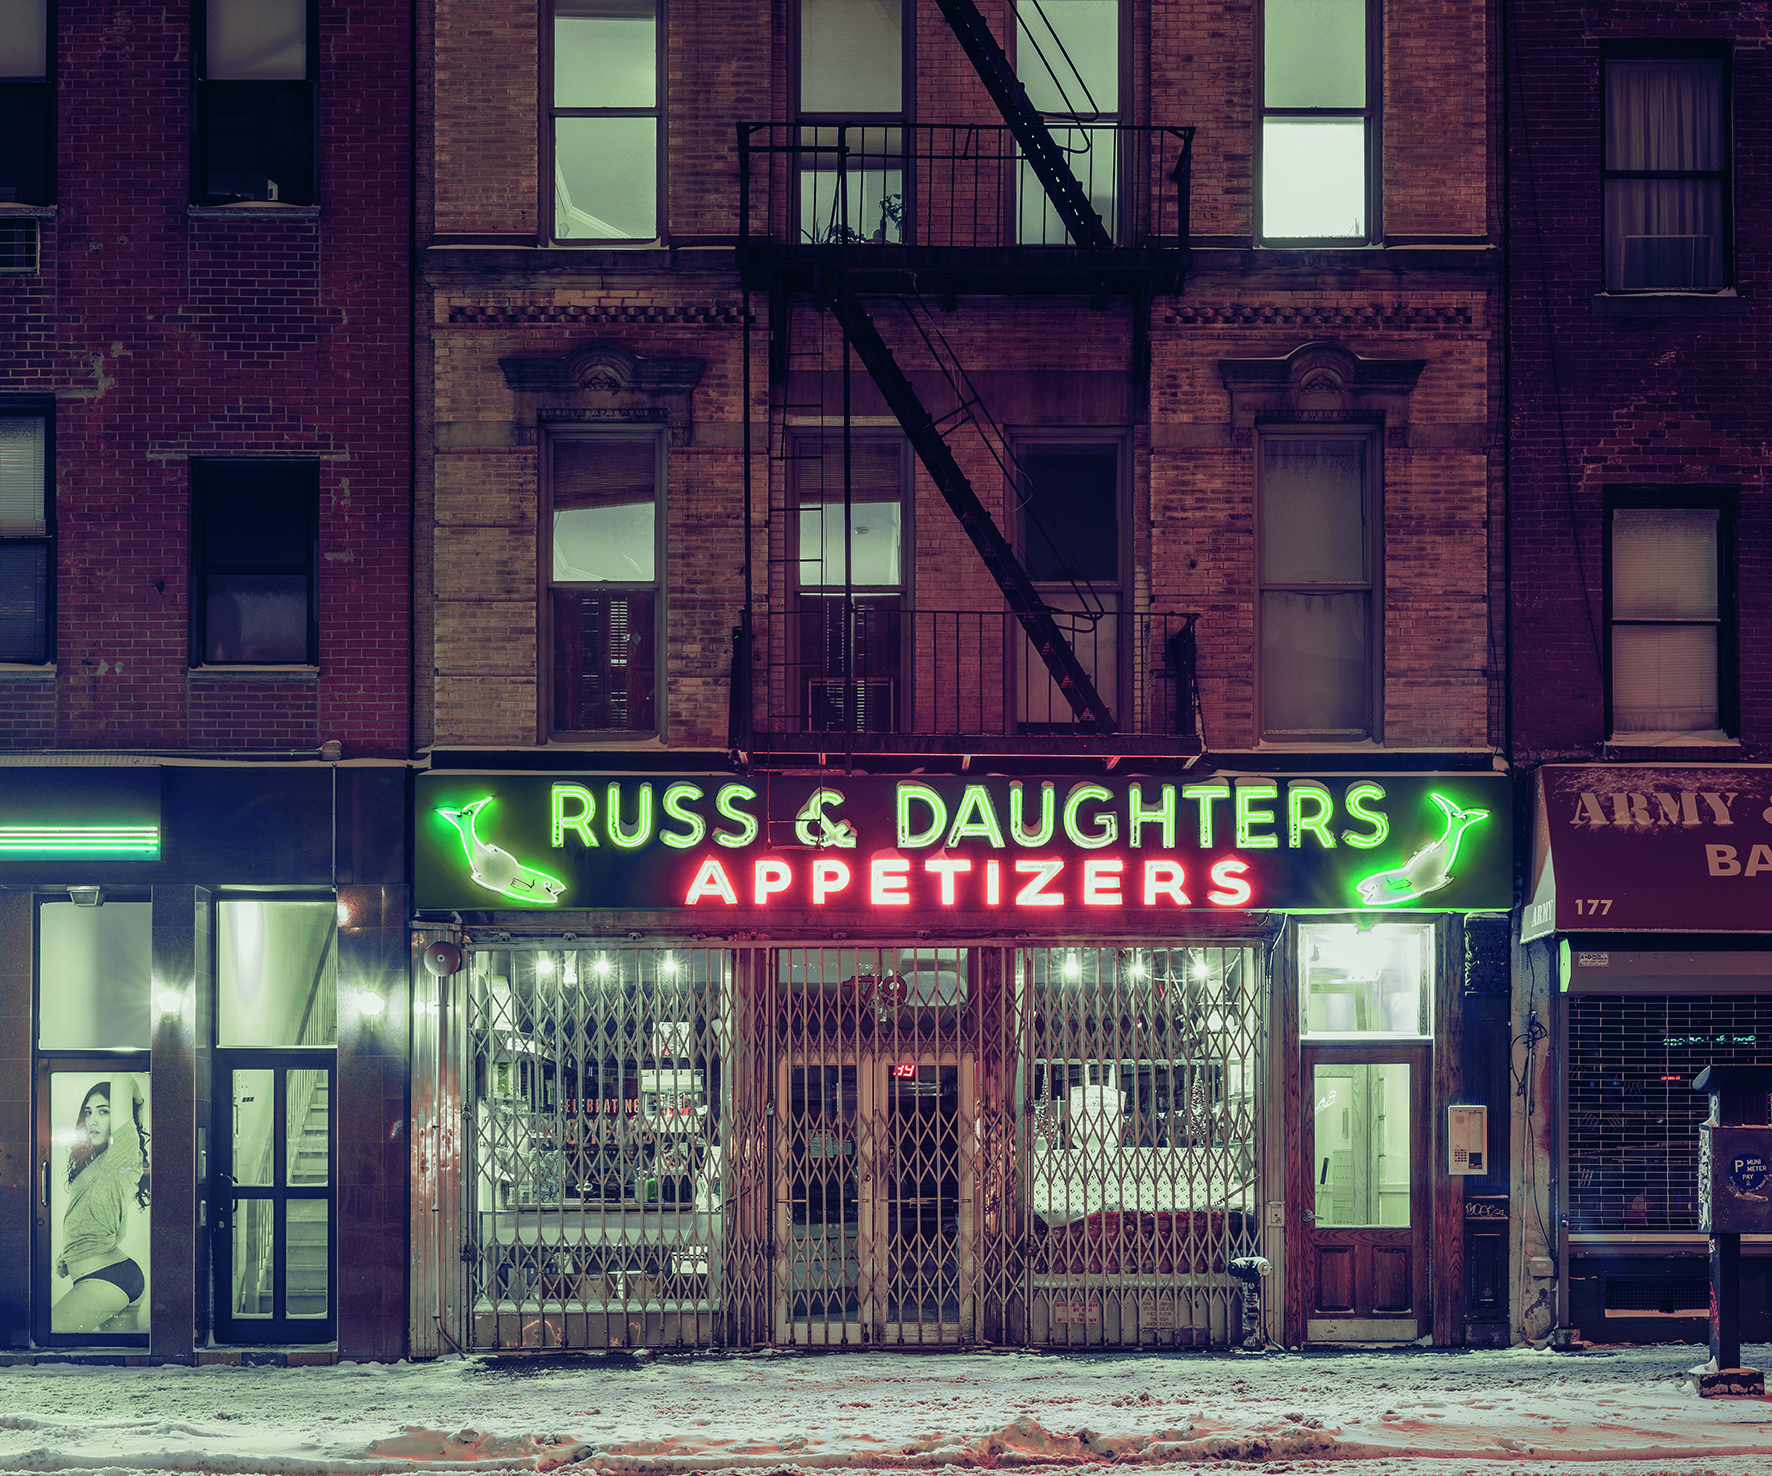 © Light On New City by Franck Bohbot, published by teNeues and YellowKorner, www.teneues.com, www.yellowkorner.com. Russ & Daughters, Lower East Side, Manhattan, 2015, Photo © 2016 Franck Bohbot/INSTITUTE. All rights reserved. www.instituteartist.com